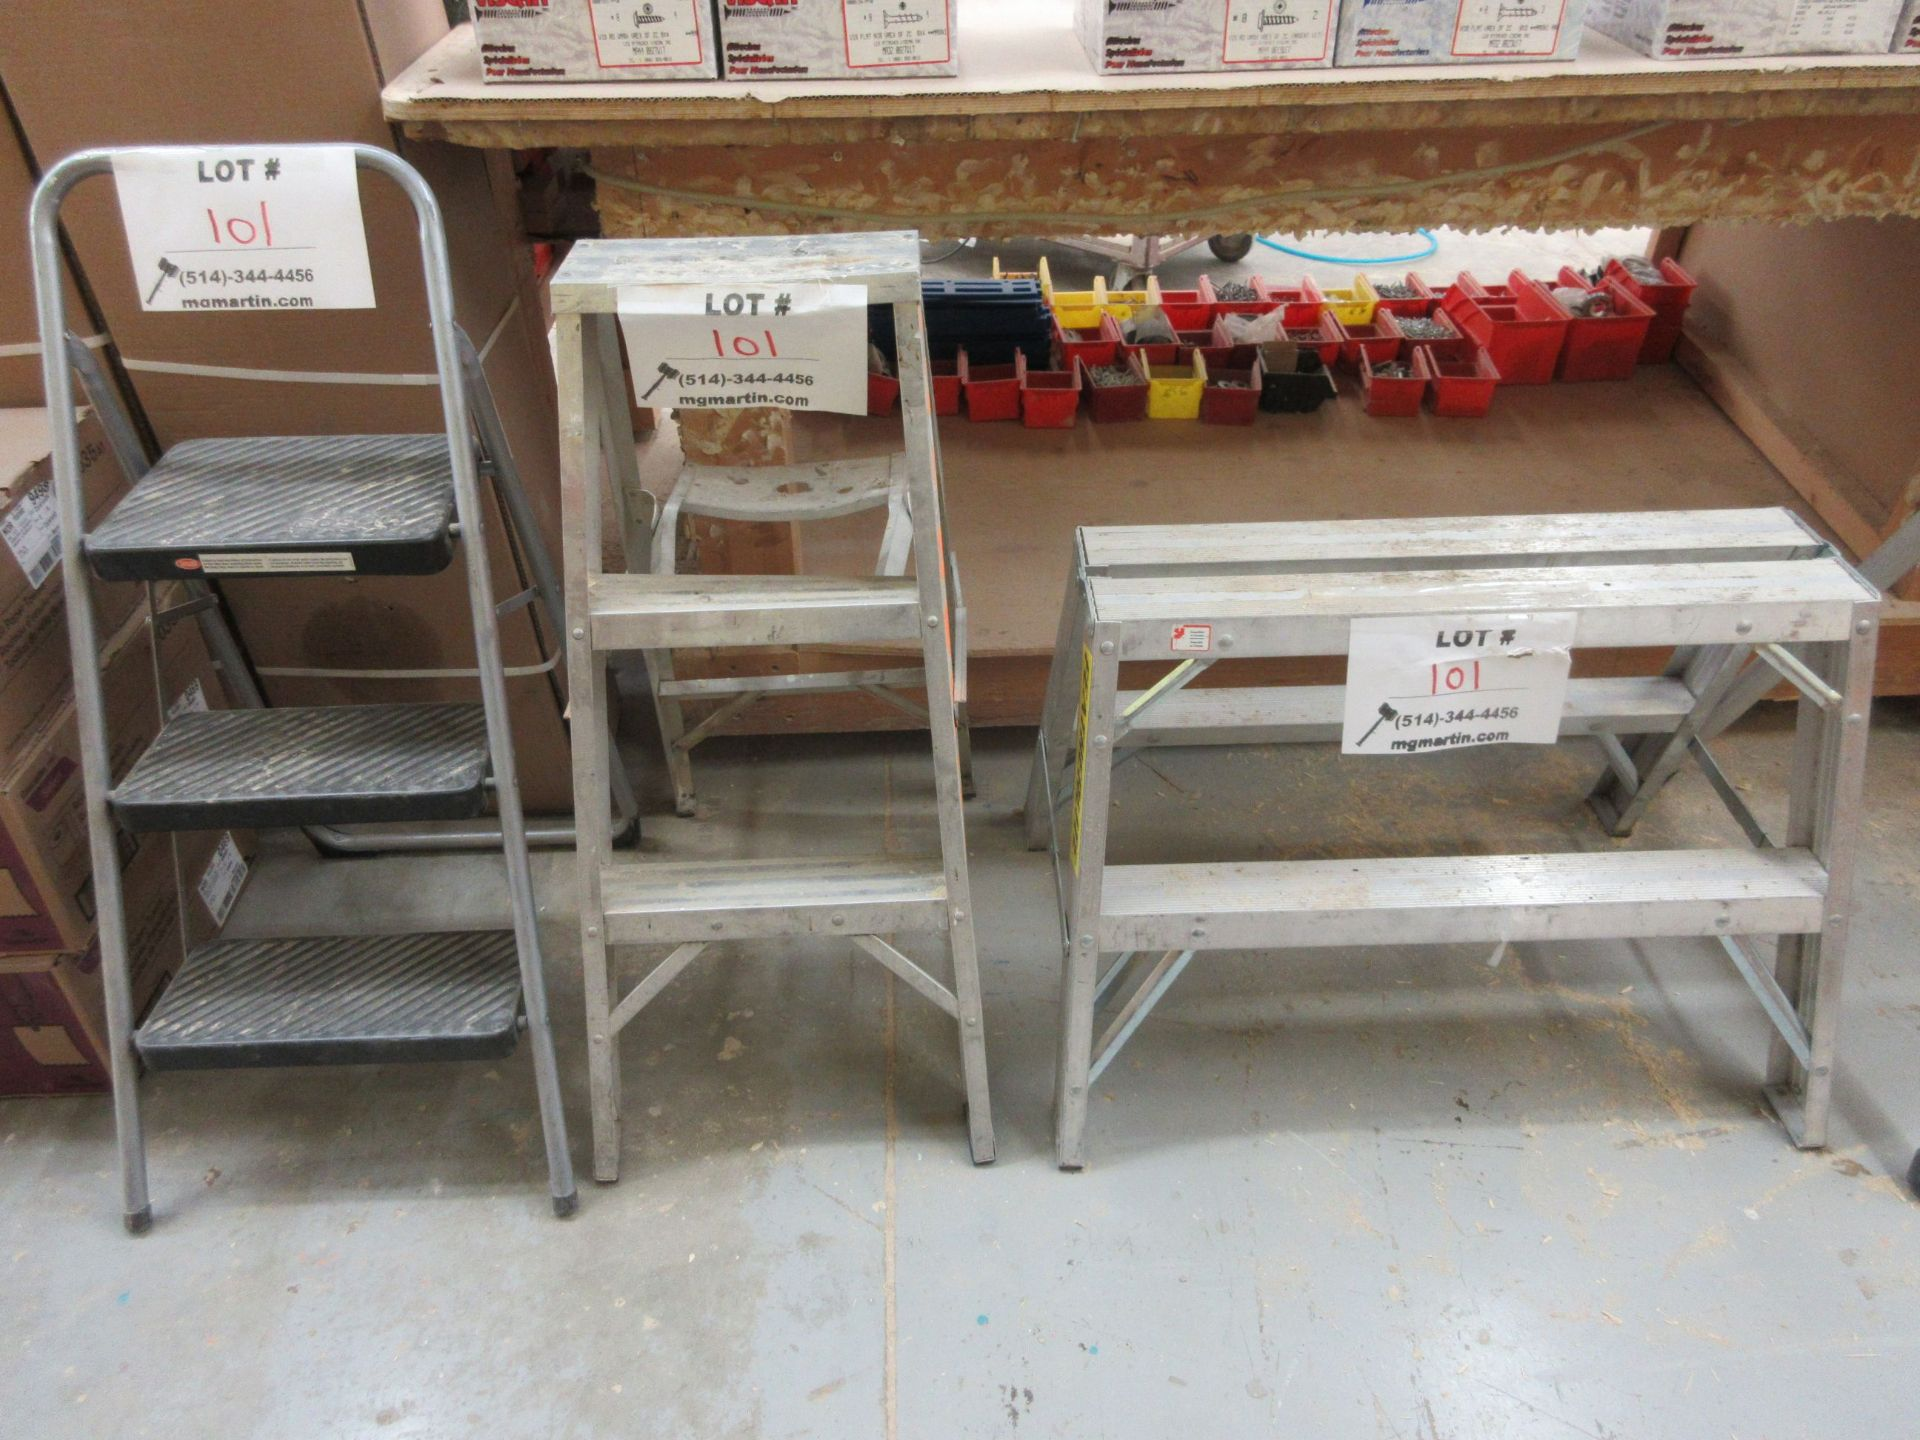 LOT including 3 step ladders